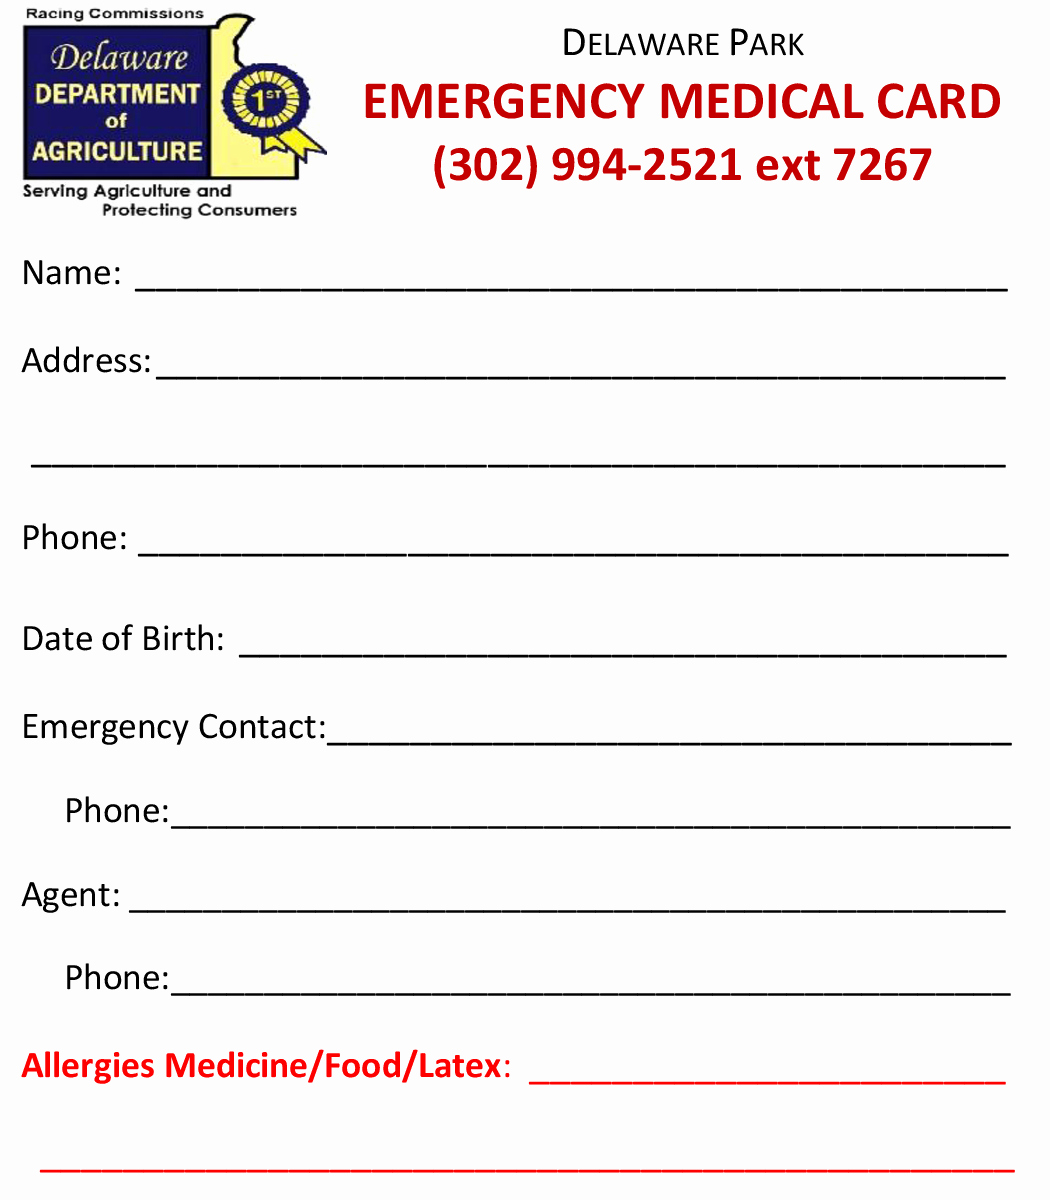 Emergency Card Template Inspirational Delaware Jockeys association